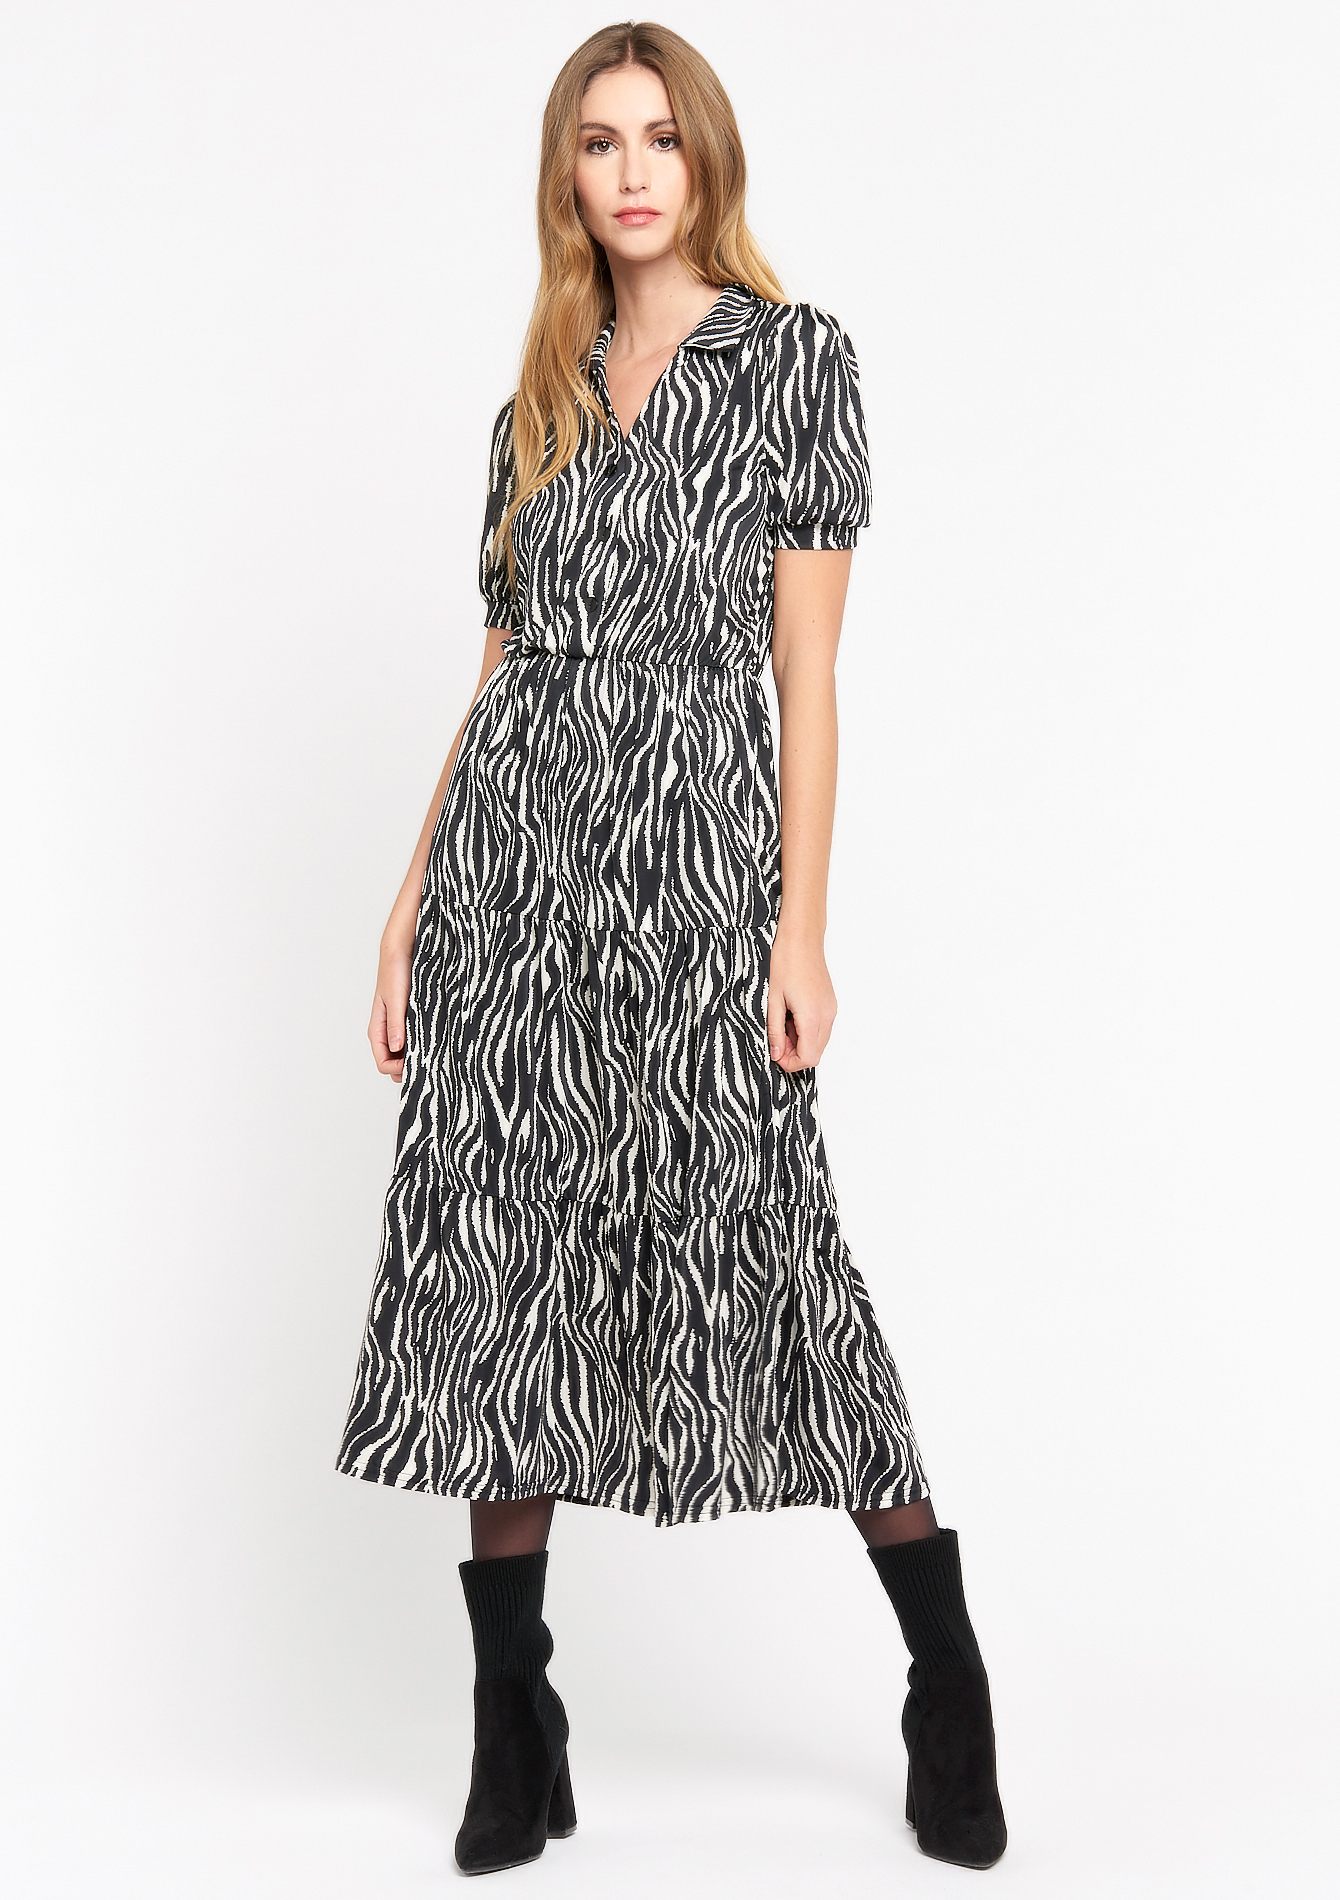 Hemdjurk met zebra print - BLACK BEAUTY - 08601276_2600